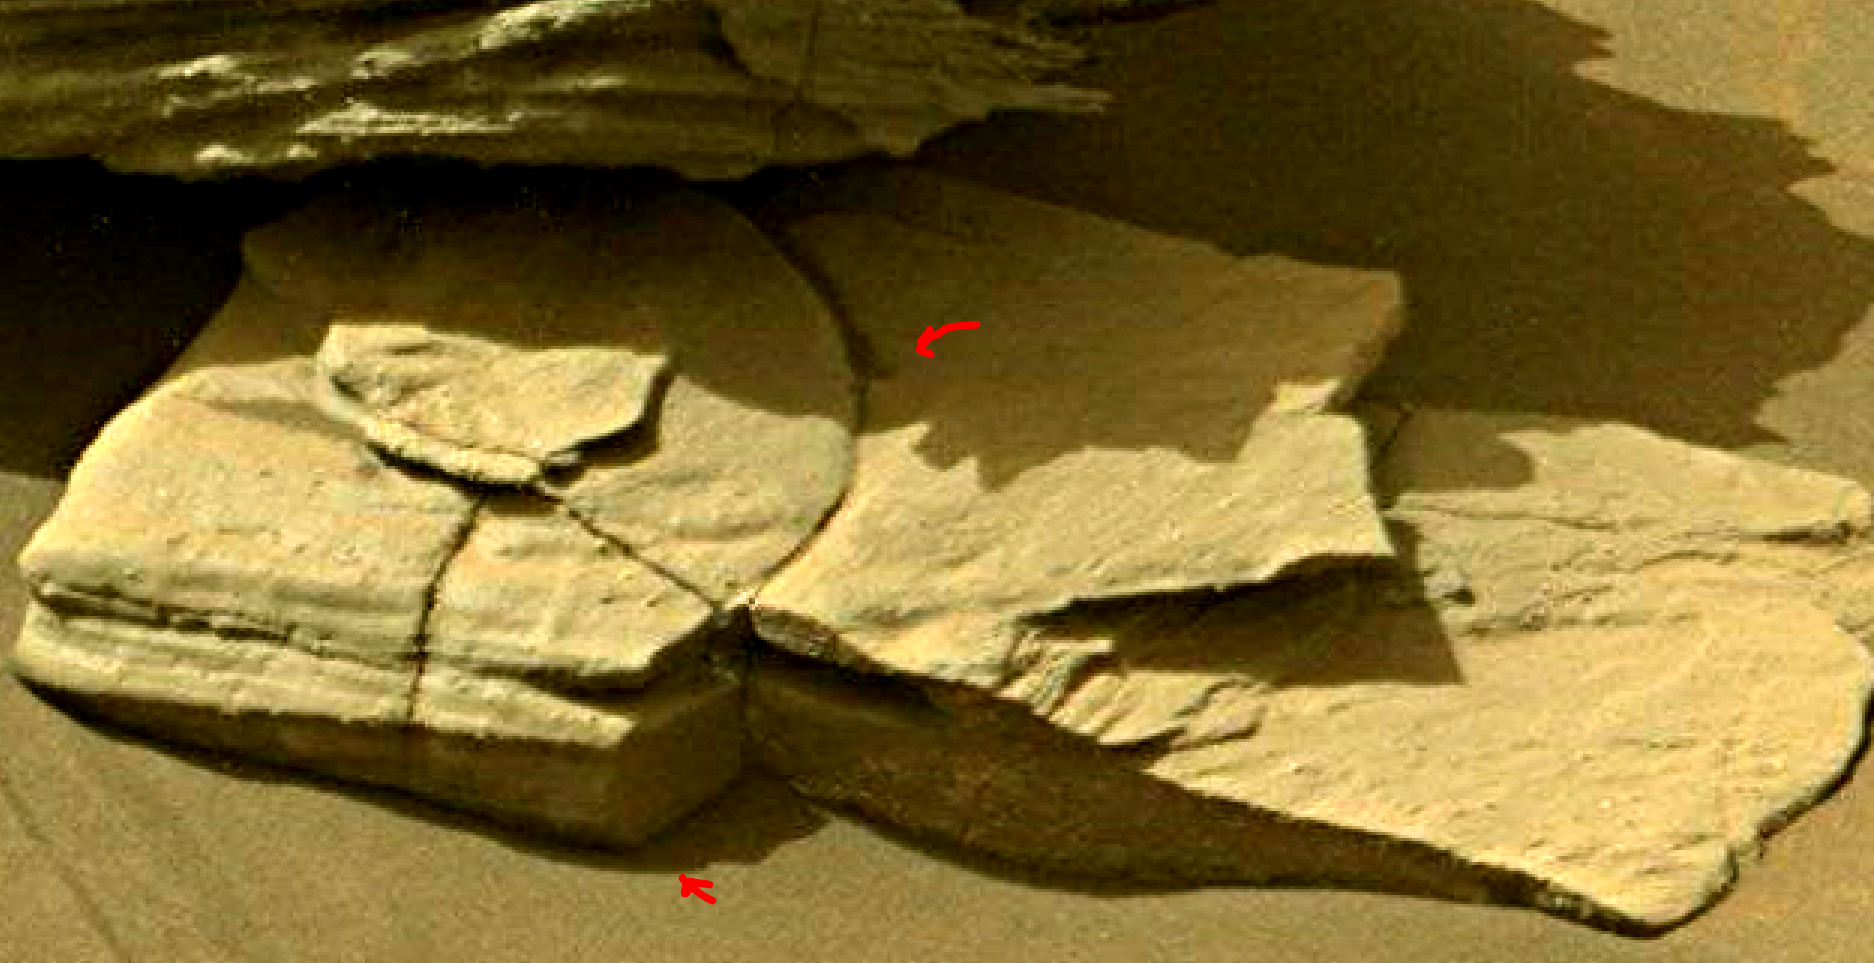 mars-sol-1467-anomaly-artifacts-2-was-life-on-mars